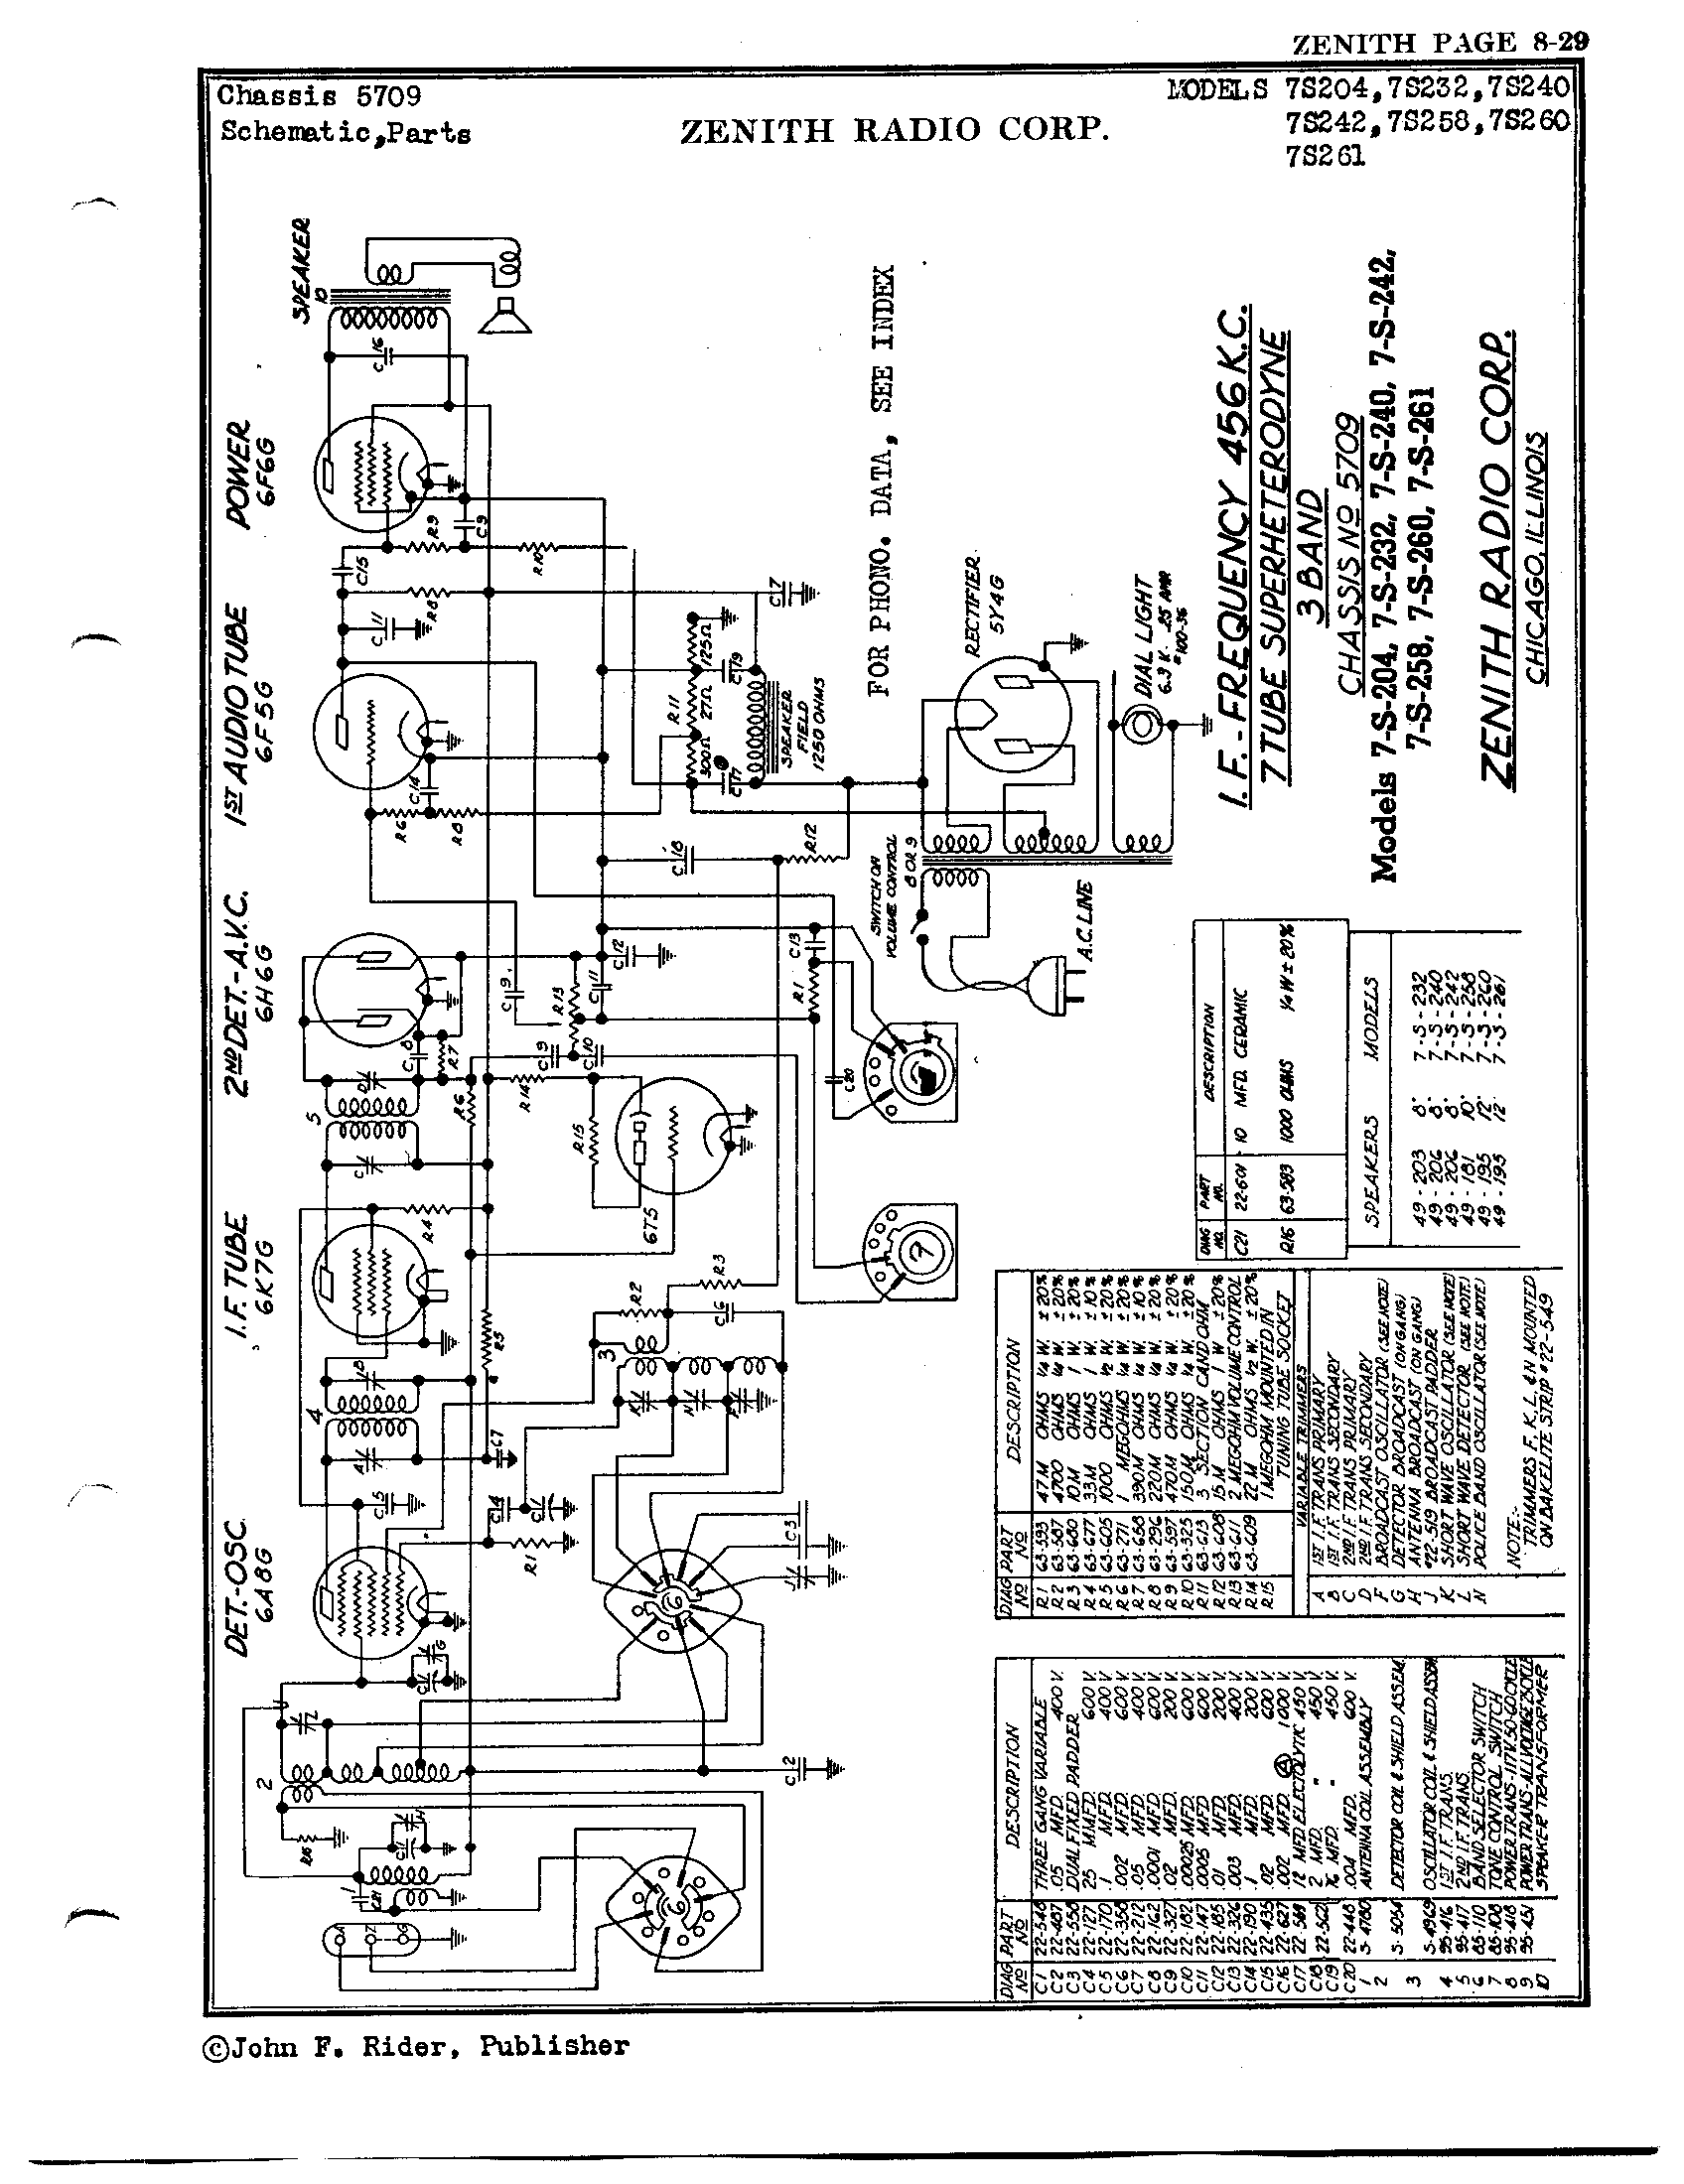 Zenith Radio Corp 7s260 Antique Electronic Supply. Page 1 8187 Kb Rider Manual Volume 8. Wiring. Zenith Tube Radio Schematics N73 1 At Scoala.co